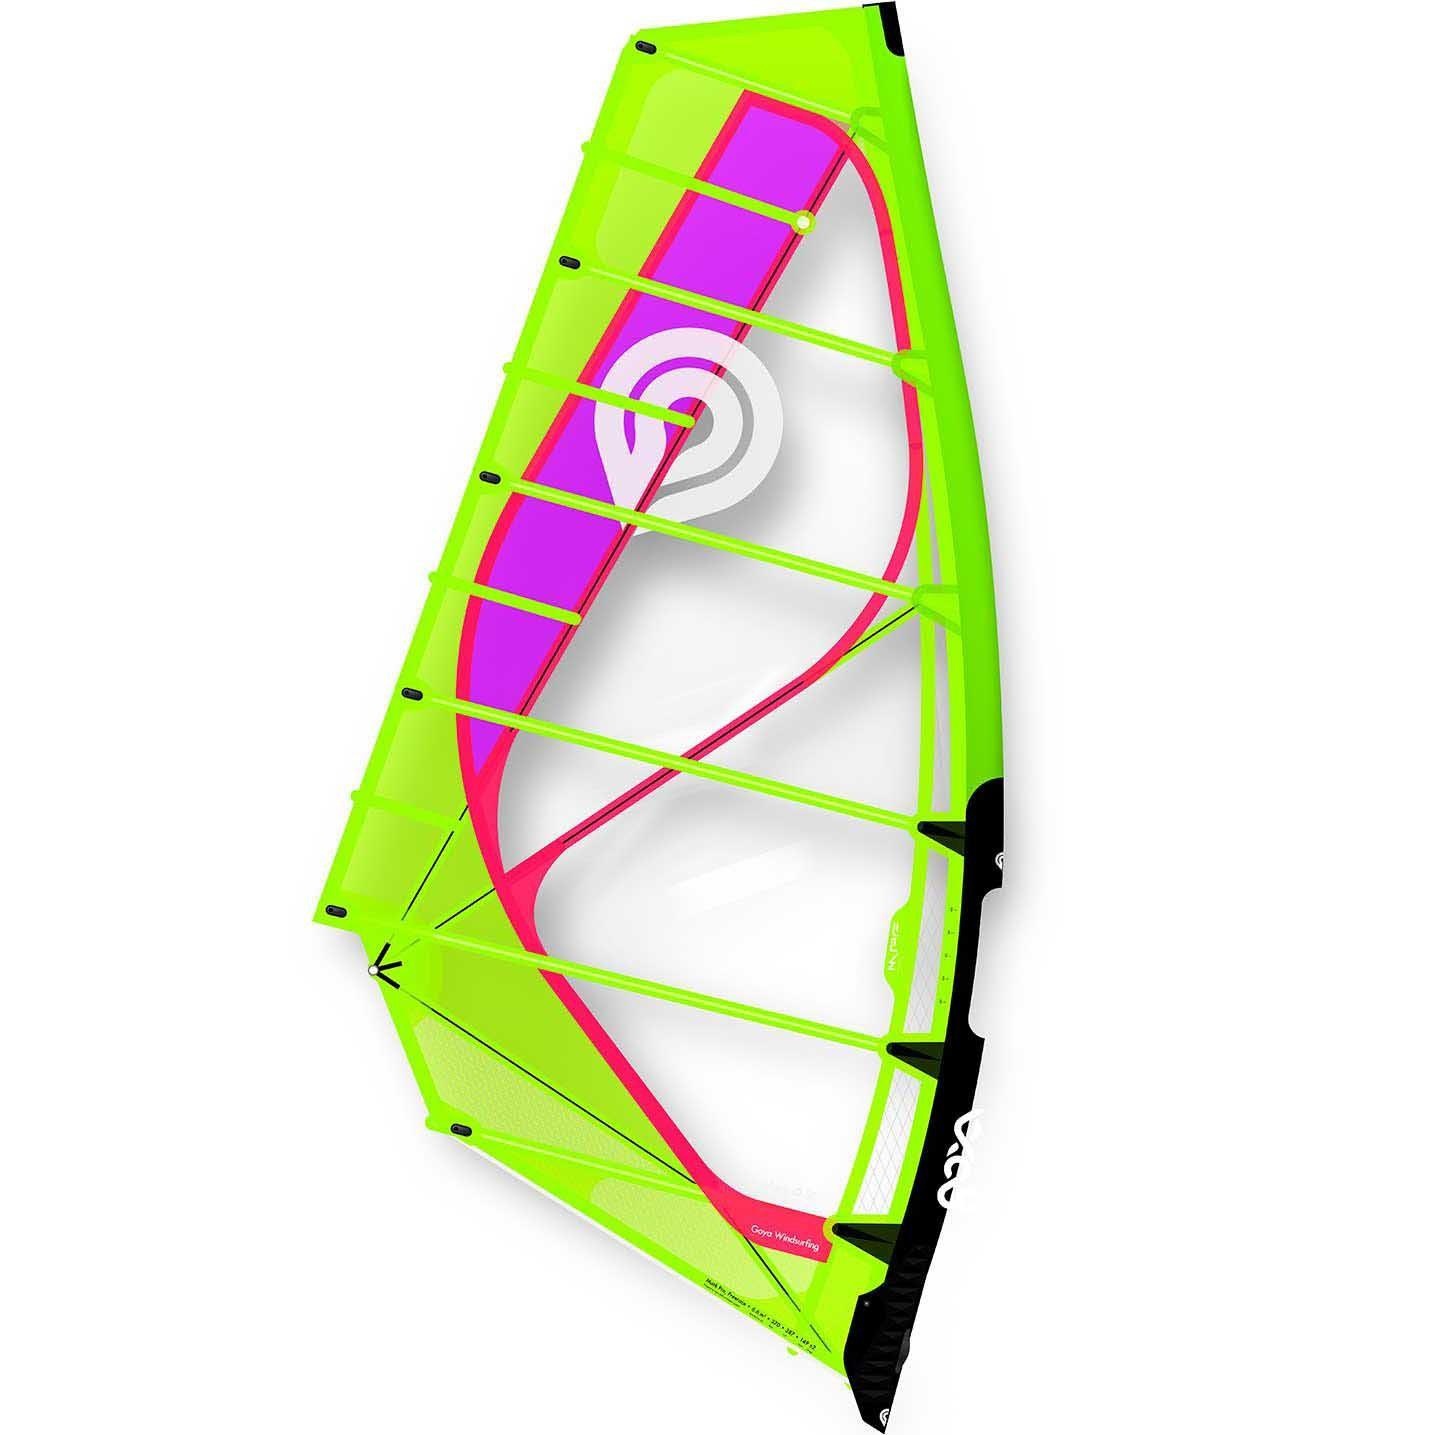 2020 Goya Mark Pro Windsurfing Sail-Big Winds